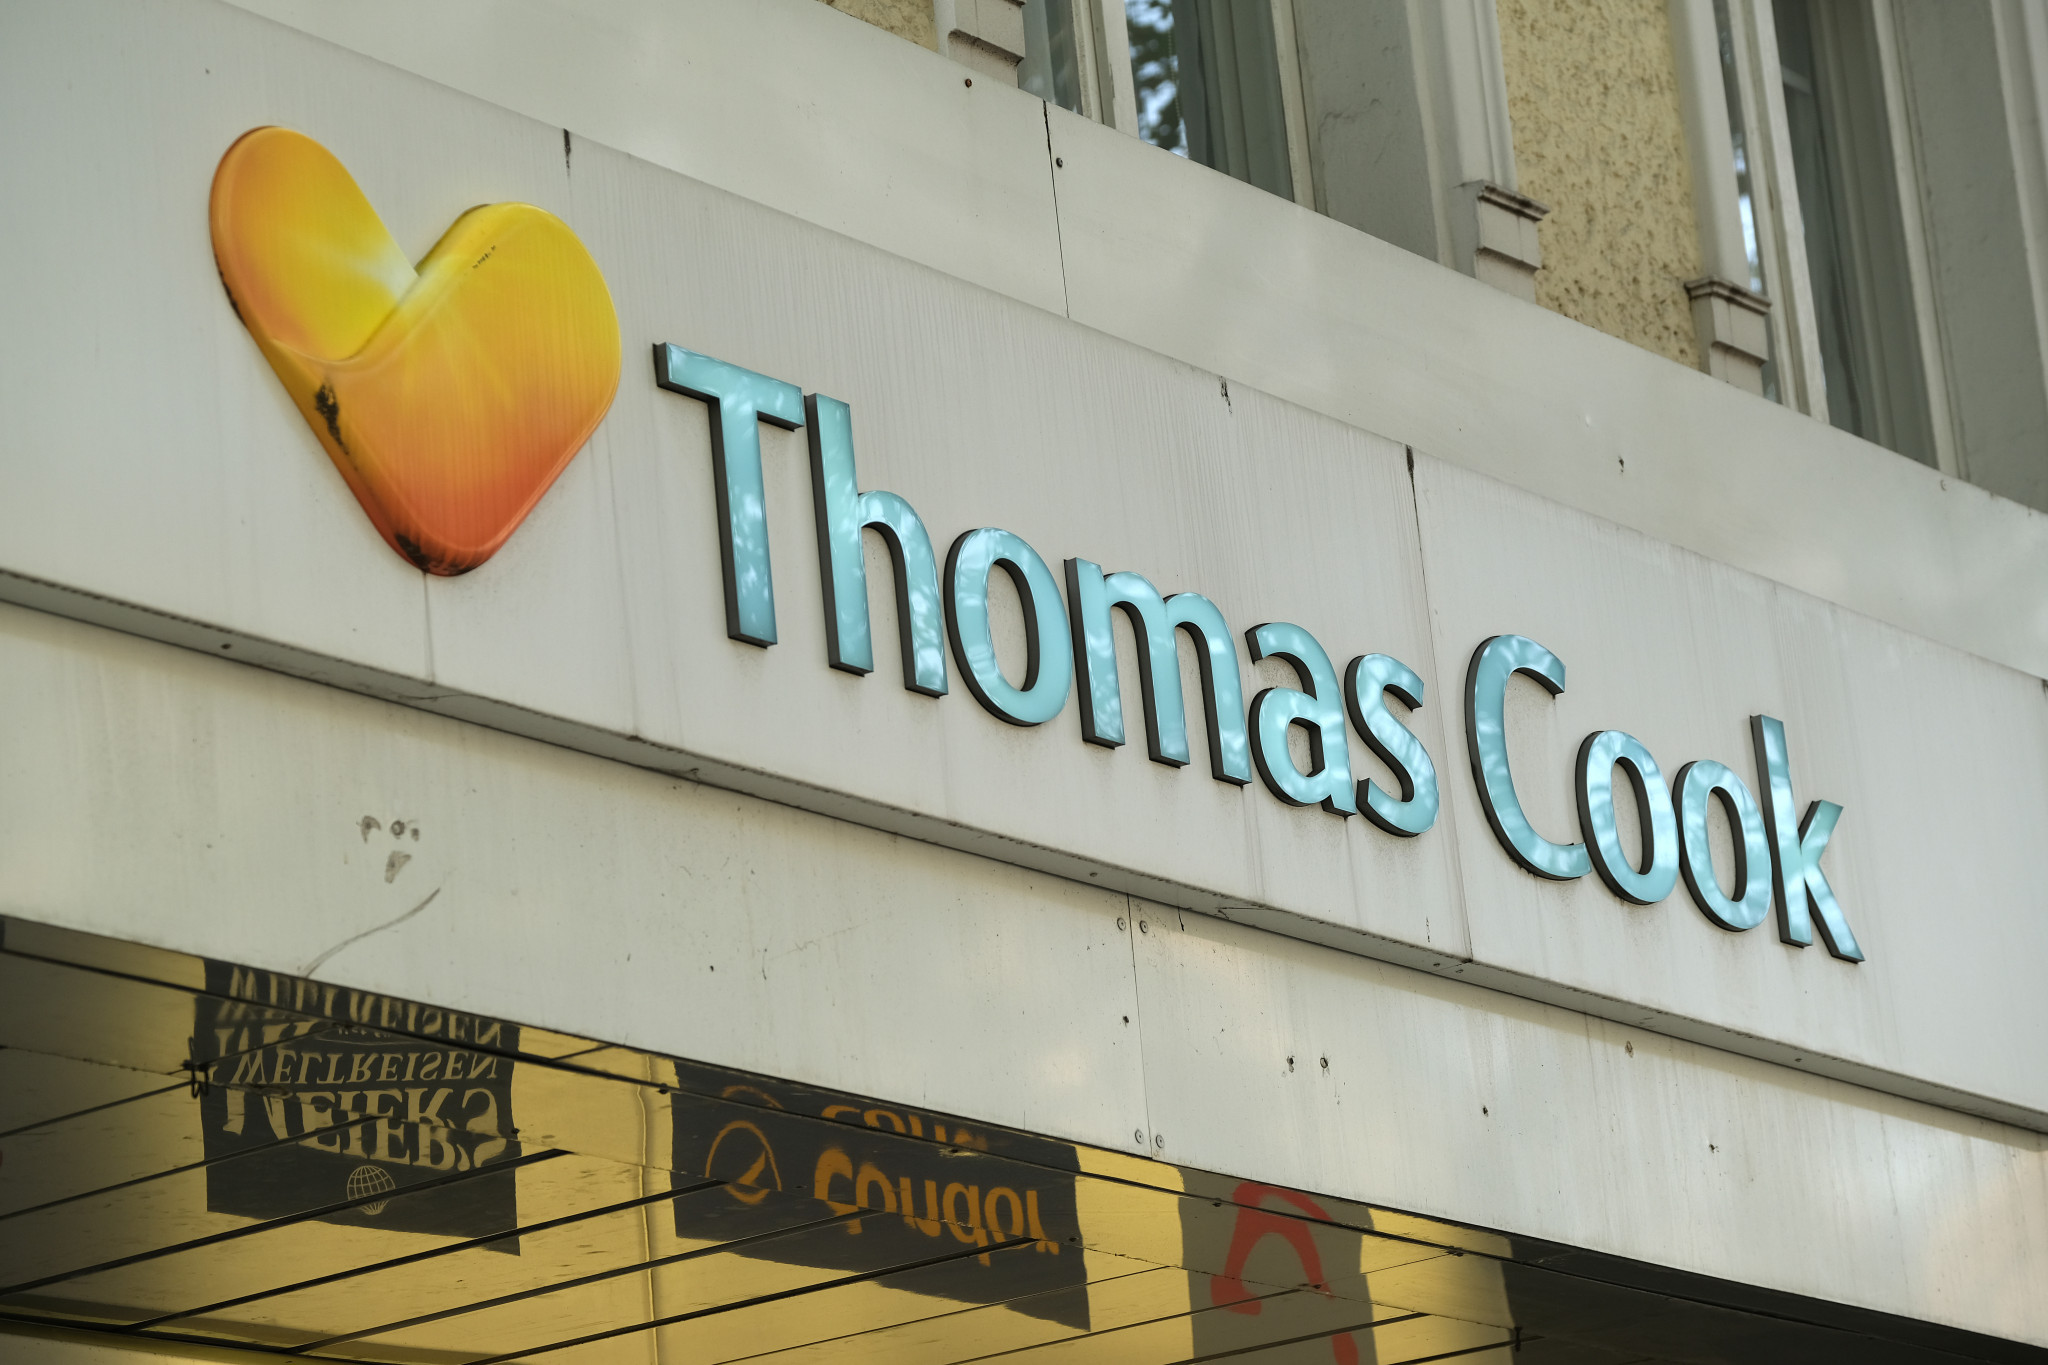 Thomas Cook has collapsed after a rescue deal could not be reached ©Getty Images